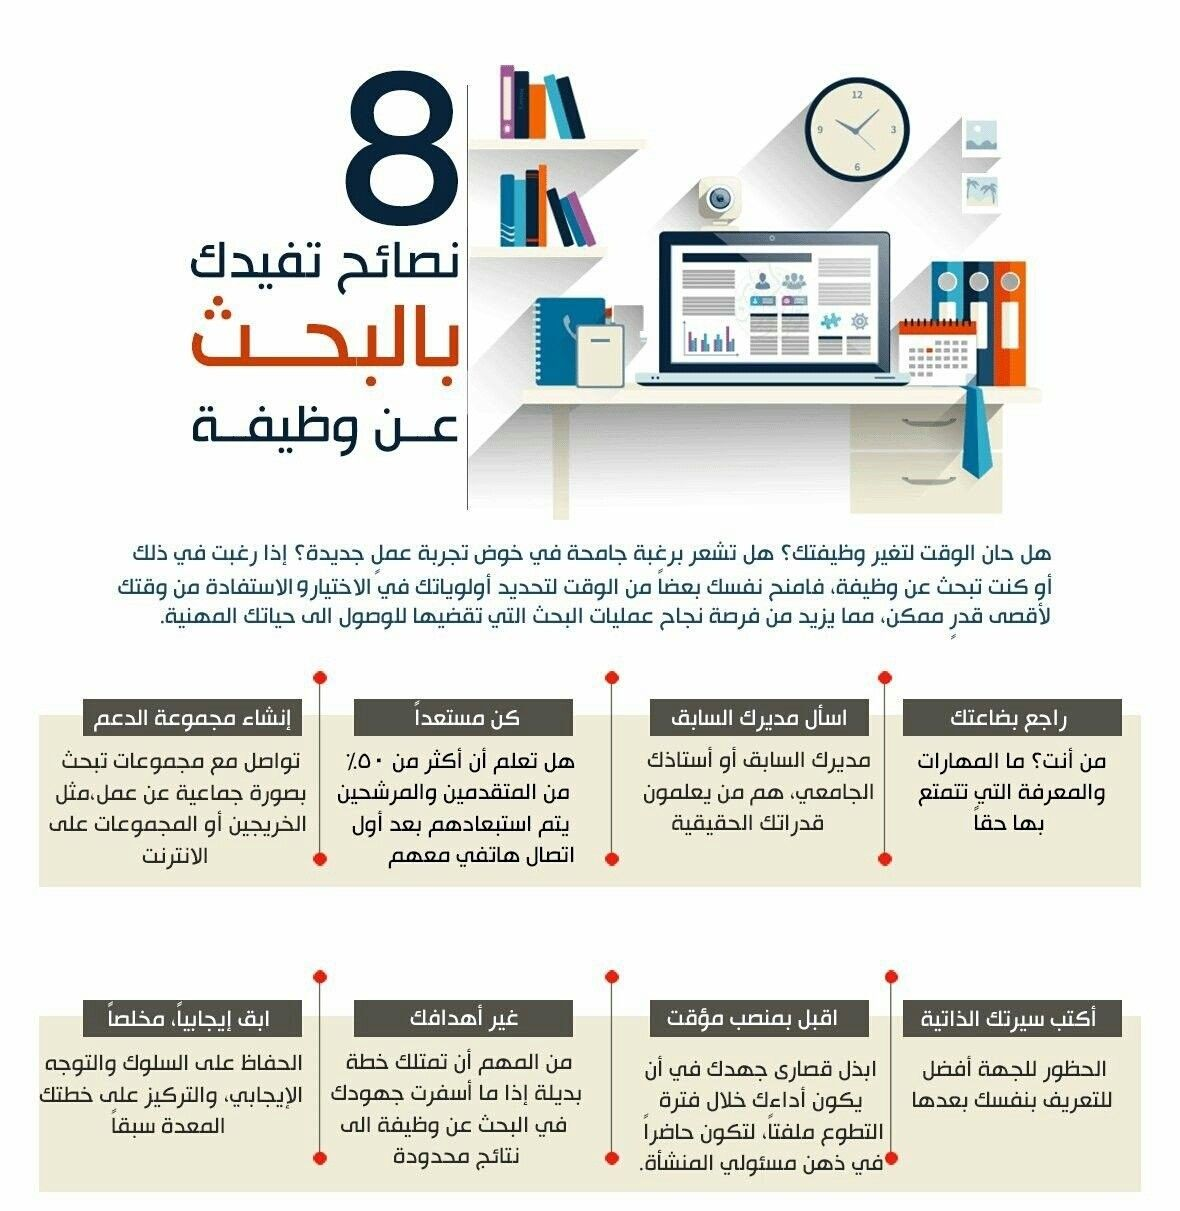 Pin By محمد الصانع On تطوير الذات Layout Design Personal Development Infographic